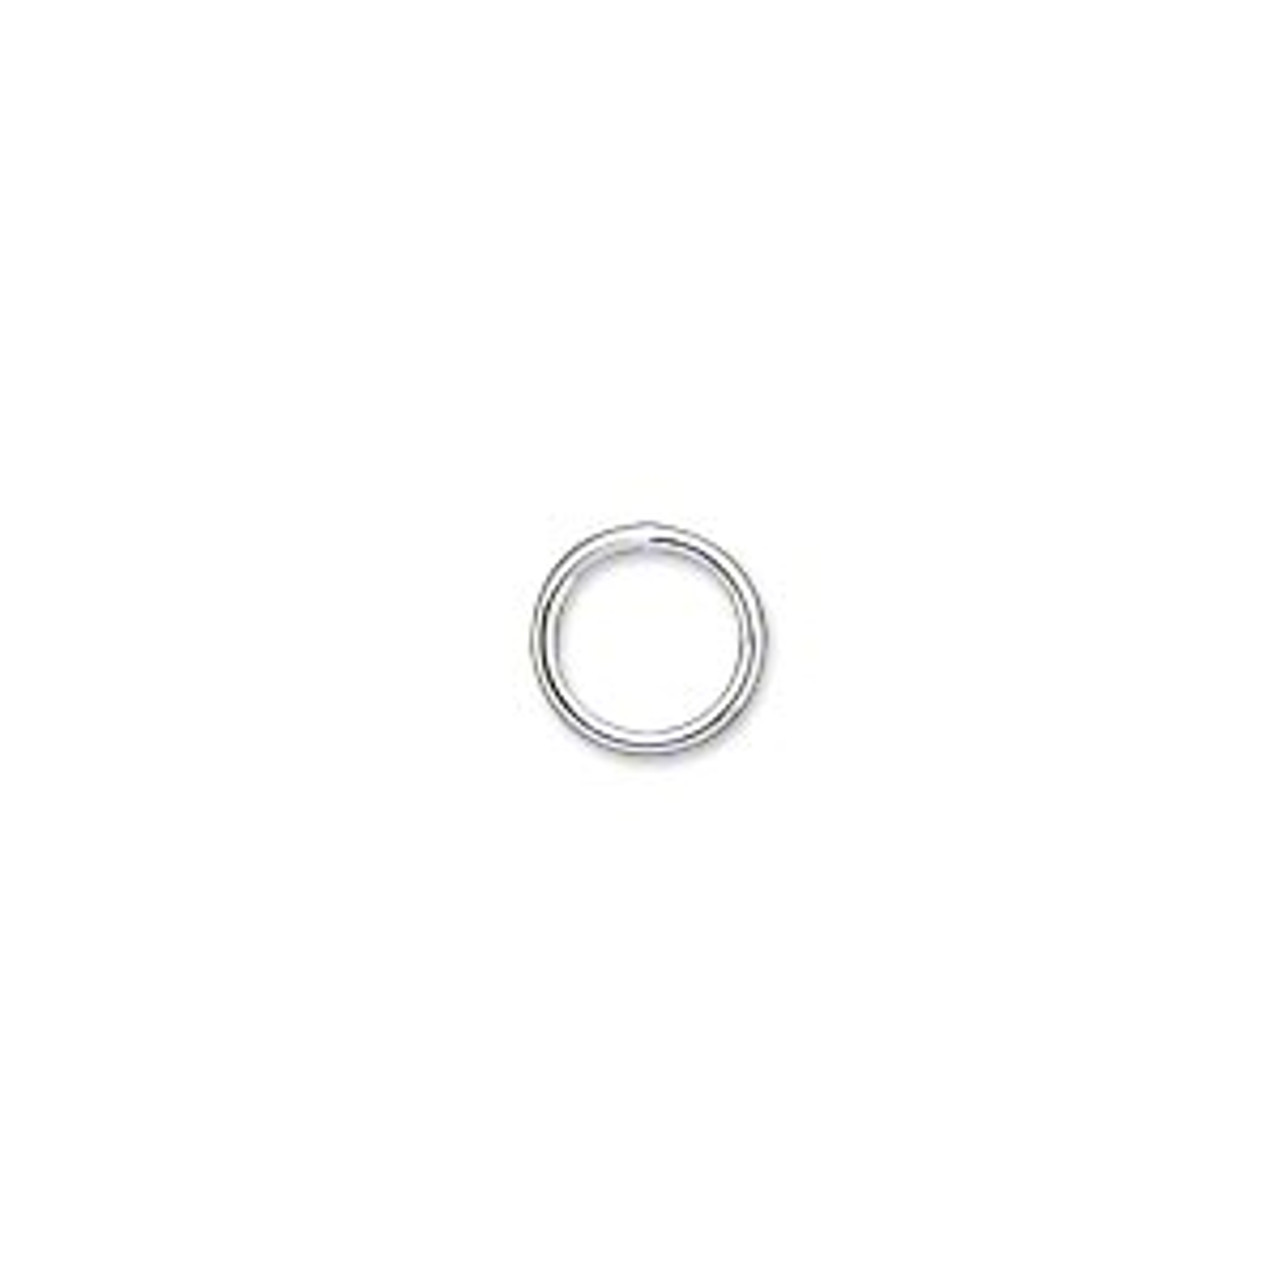 18ga 8mm Soldering Jump Ring - SIlver Plated